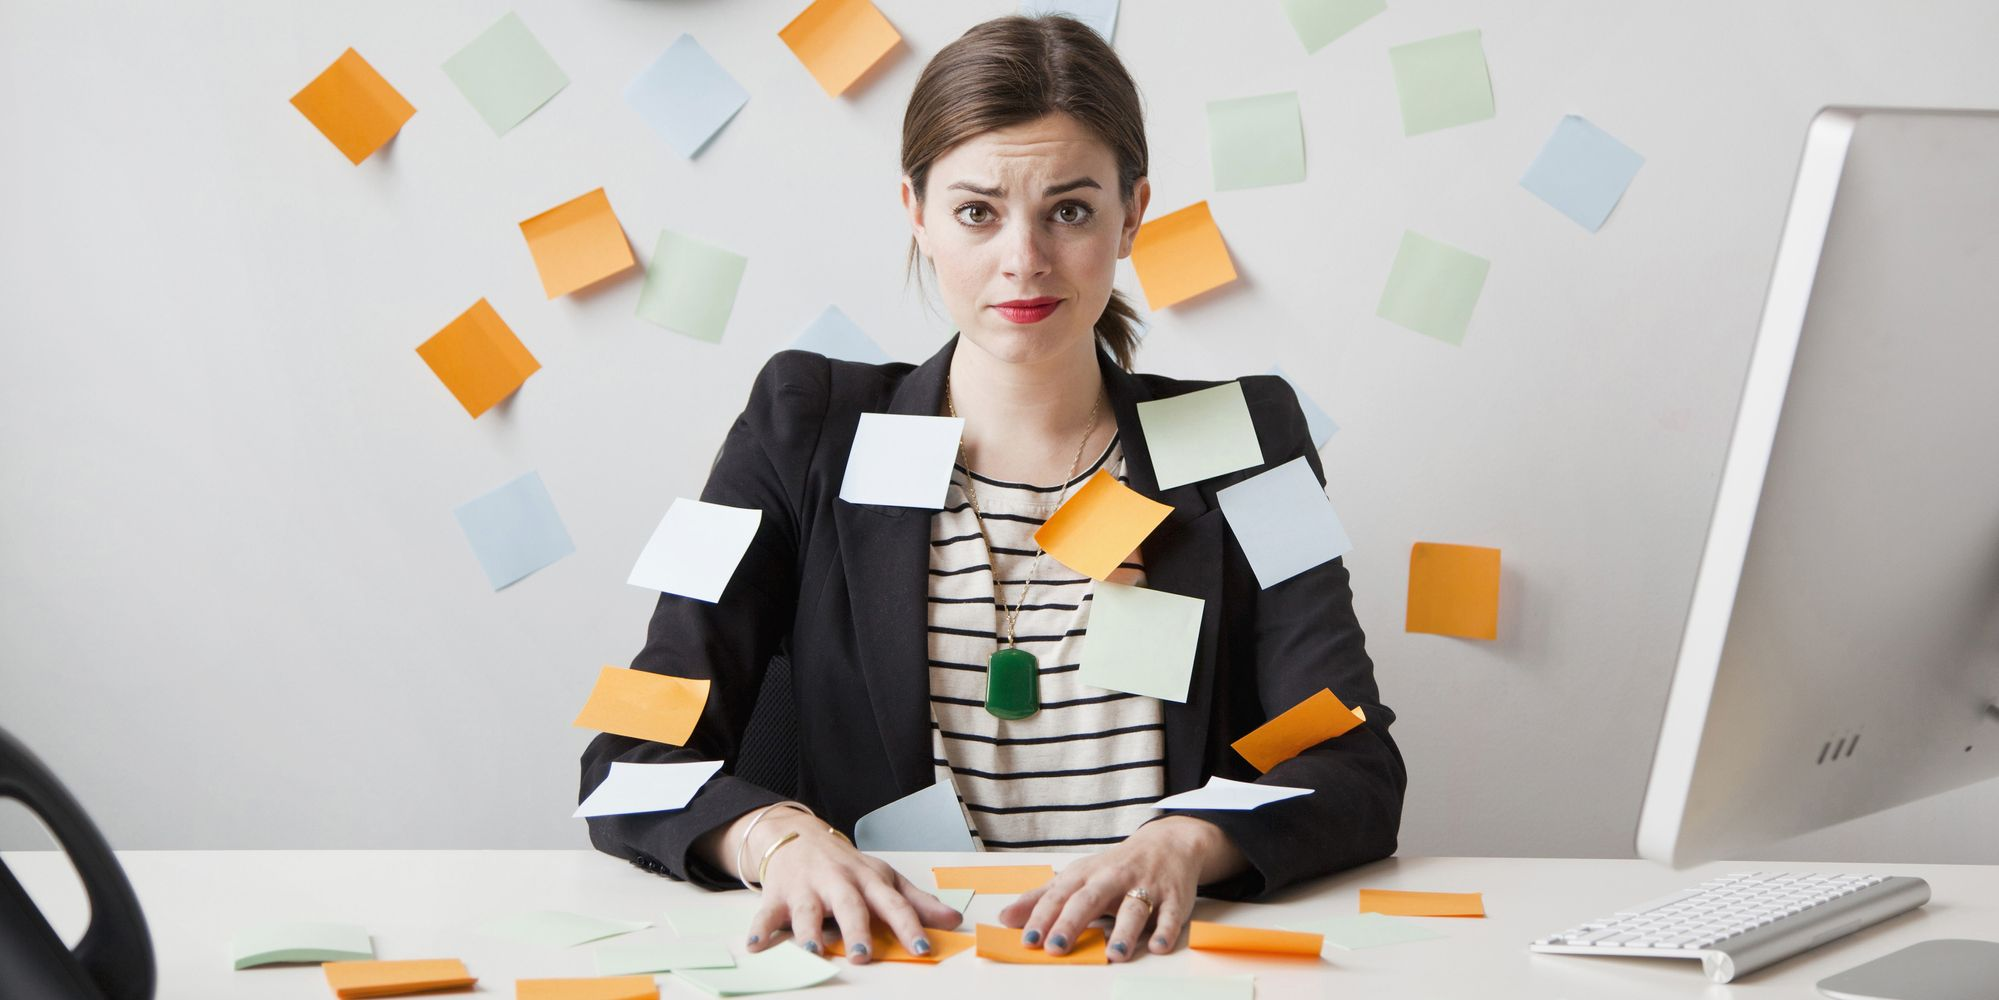 Coping strategies for stress at work